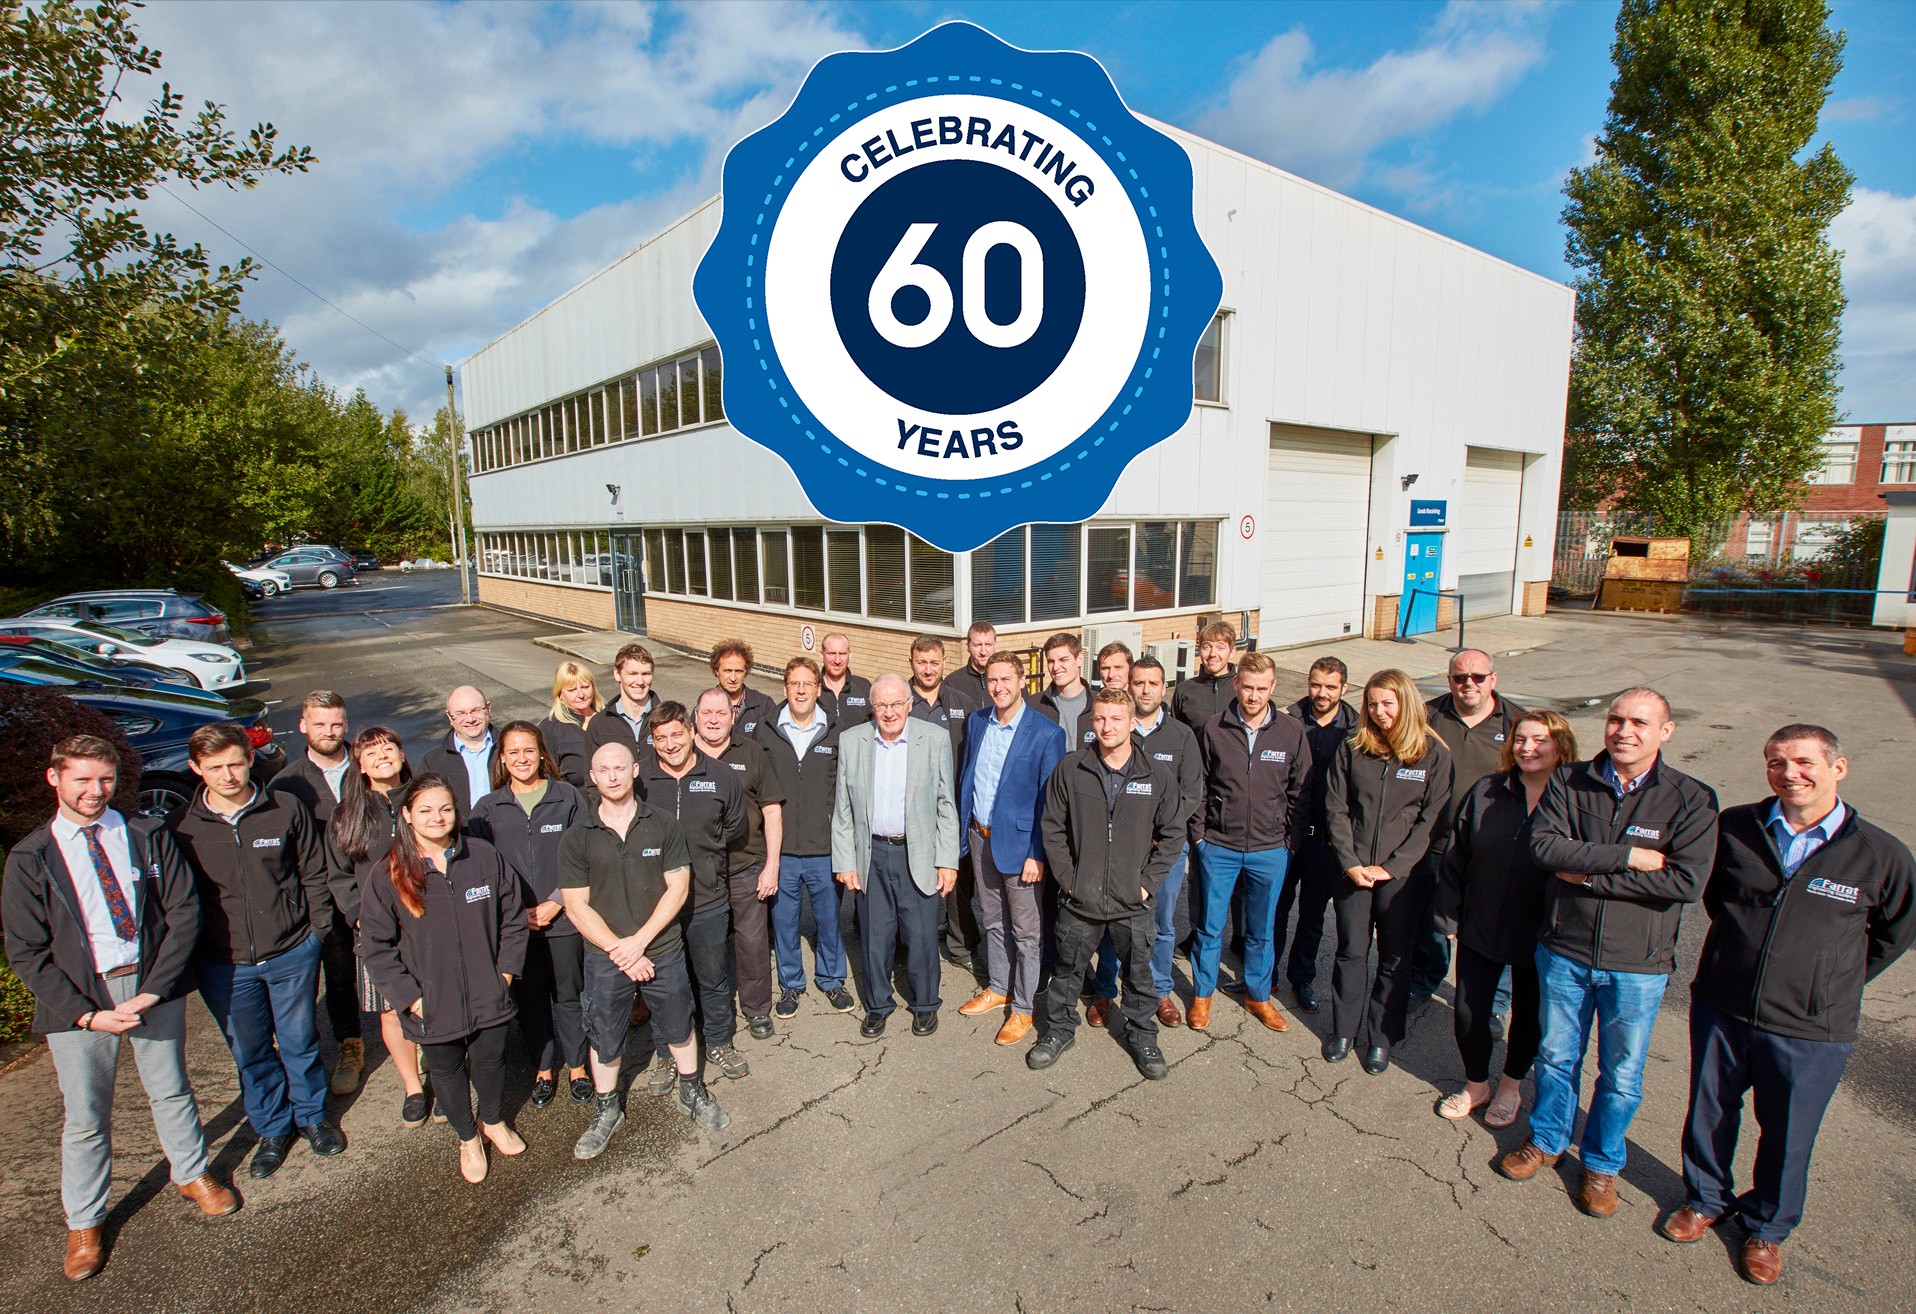 Farrat celebrating 60 years of engineering and manufacturing in the UK